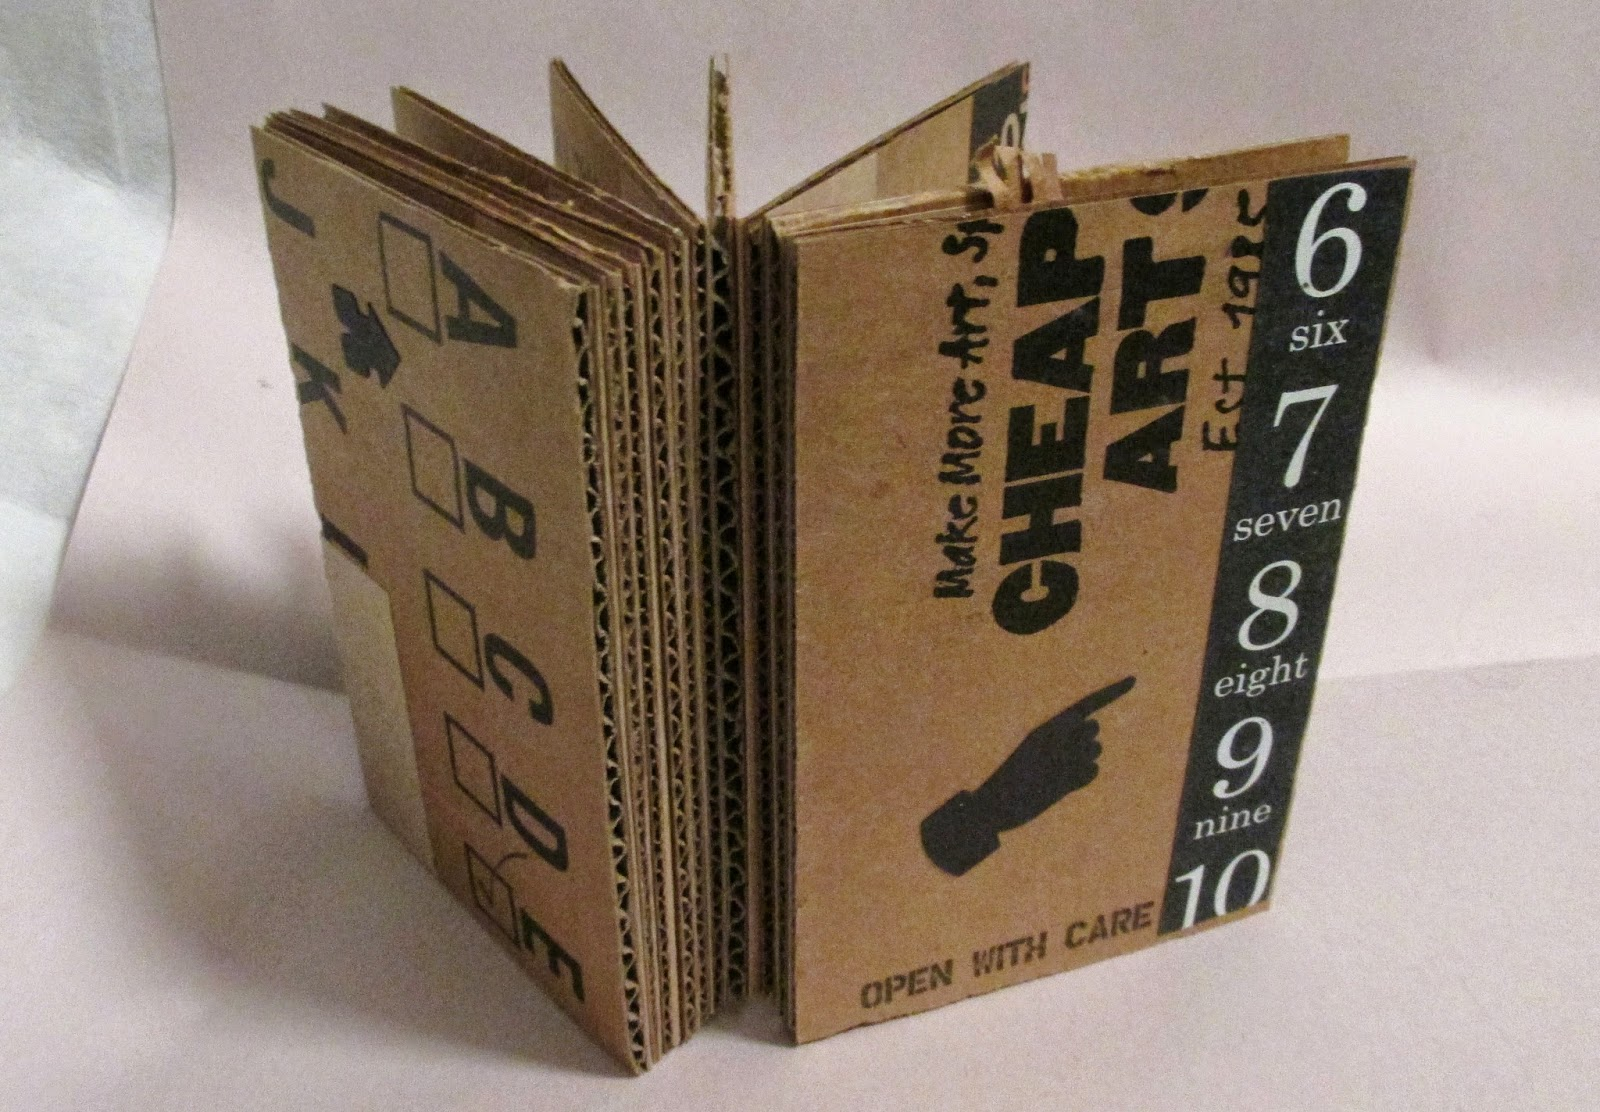 How To Make A Book Cover Out Of Cardboard : Art kerfuffle cheap